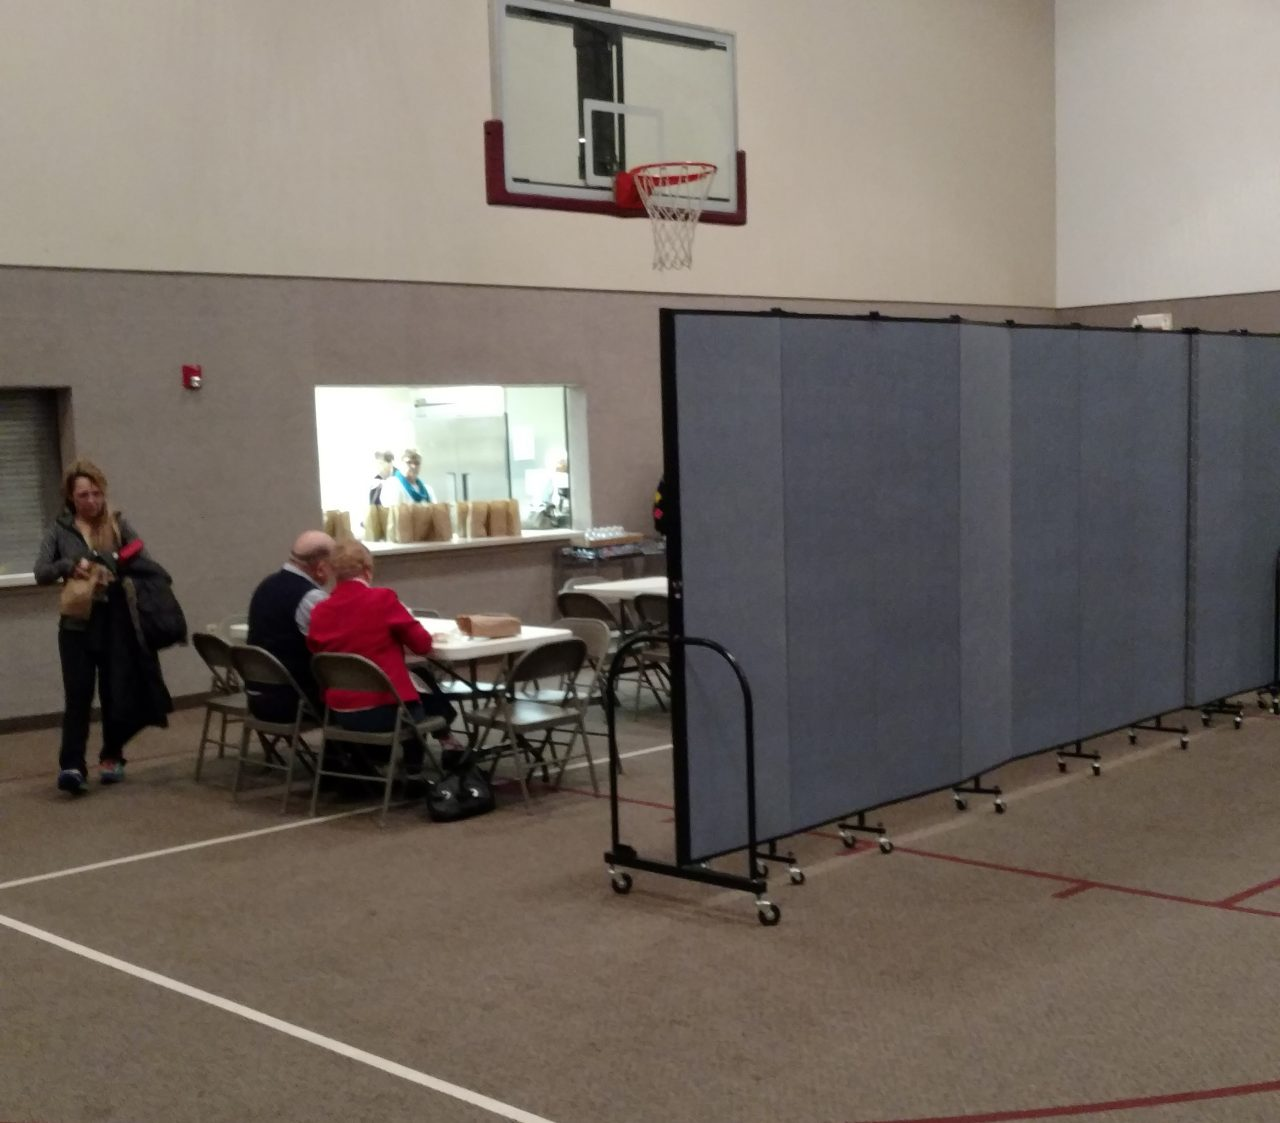 Expand Church Gym Space With Room Dividers Screenflex